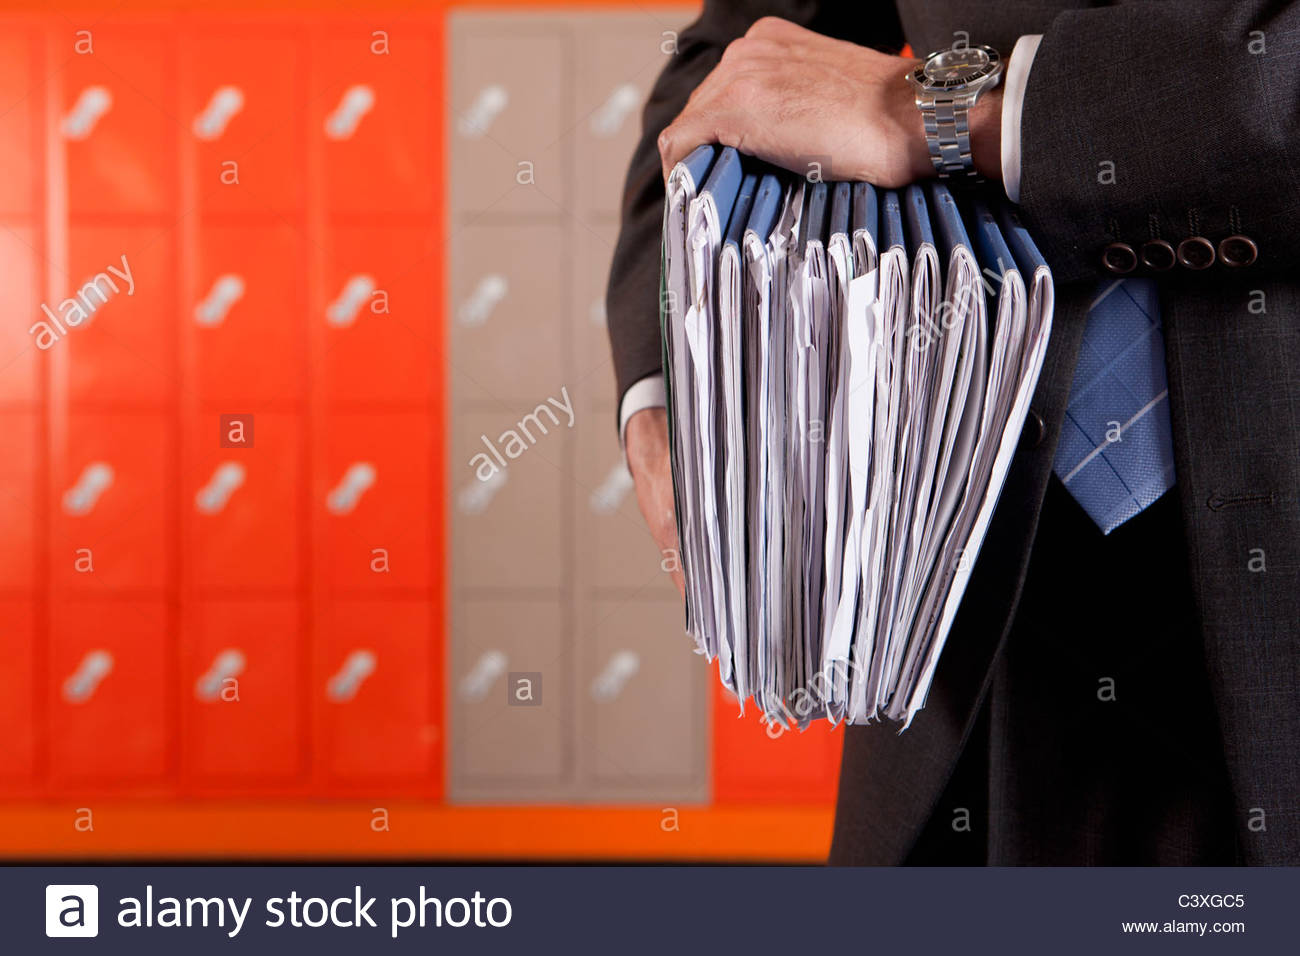 Close up of teacher holding paperwork near school lockers - Stock Image